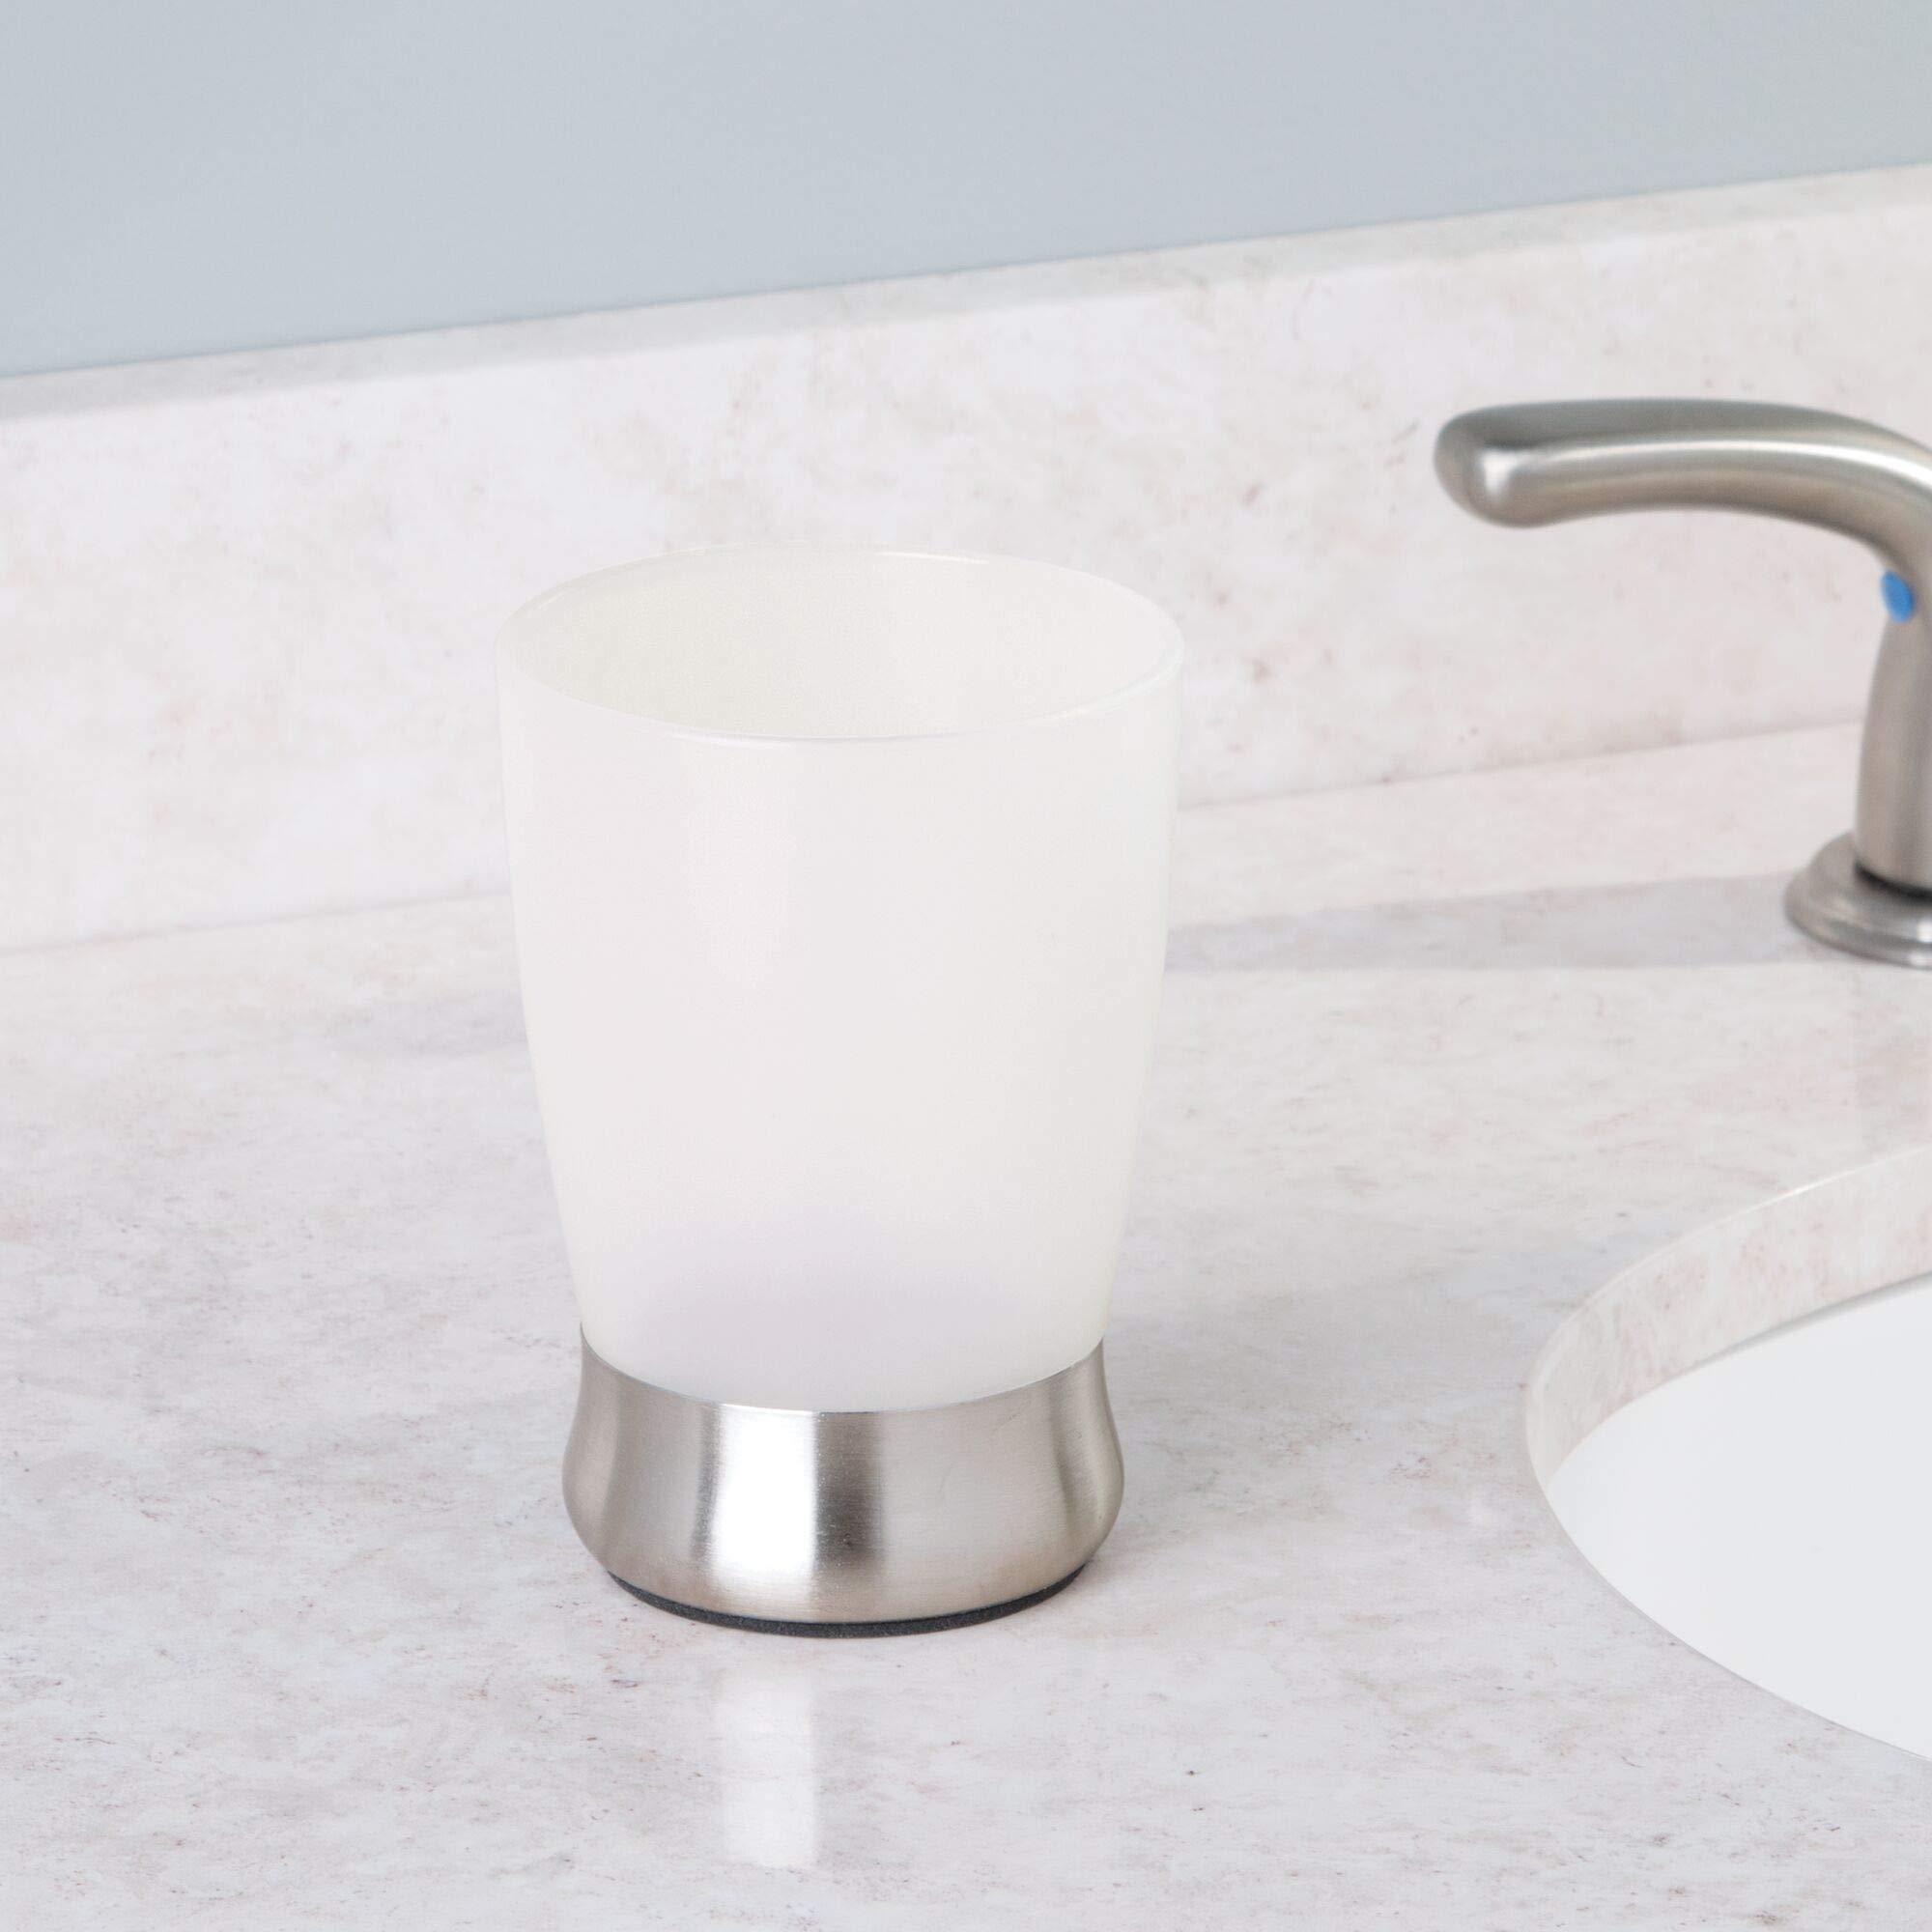 InterDesign Lusso Bath Collection, Tumbler Cup for Bathroom Vanity Countertops - Clear/Brushed Stainless Steel by InterDesign